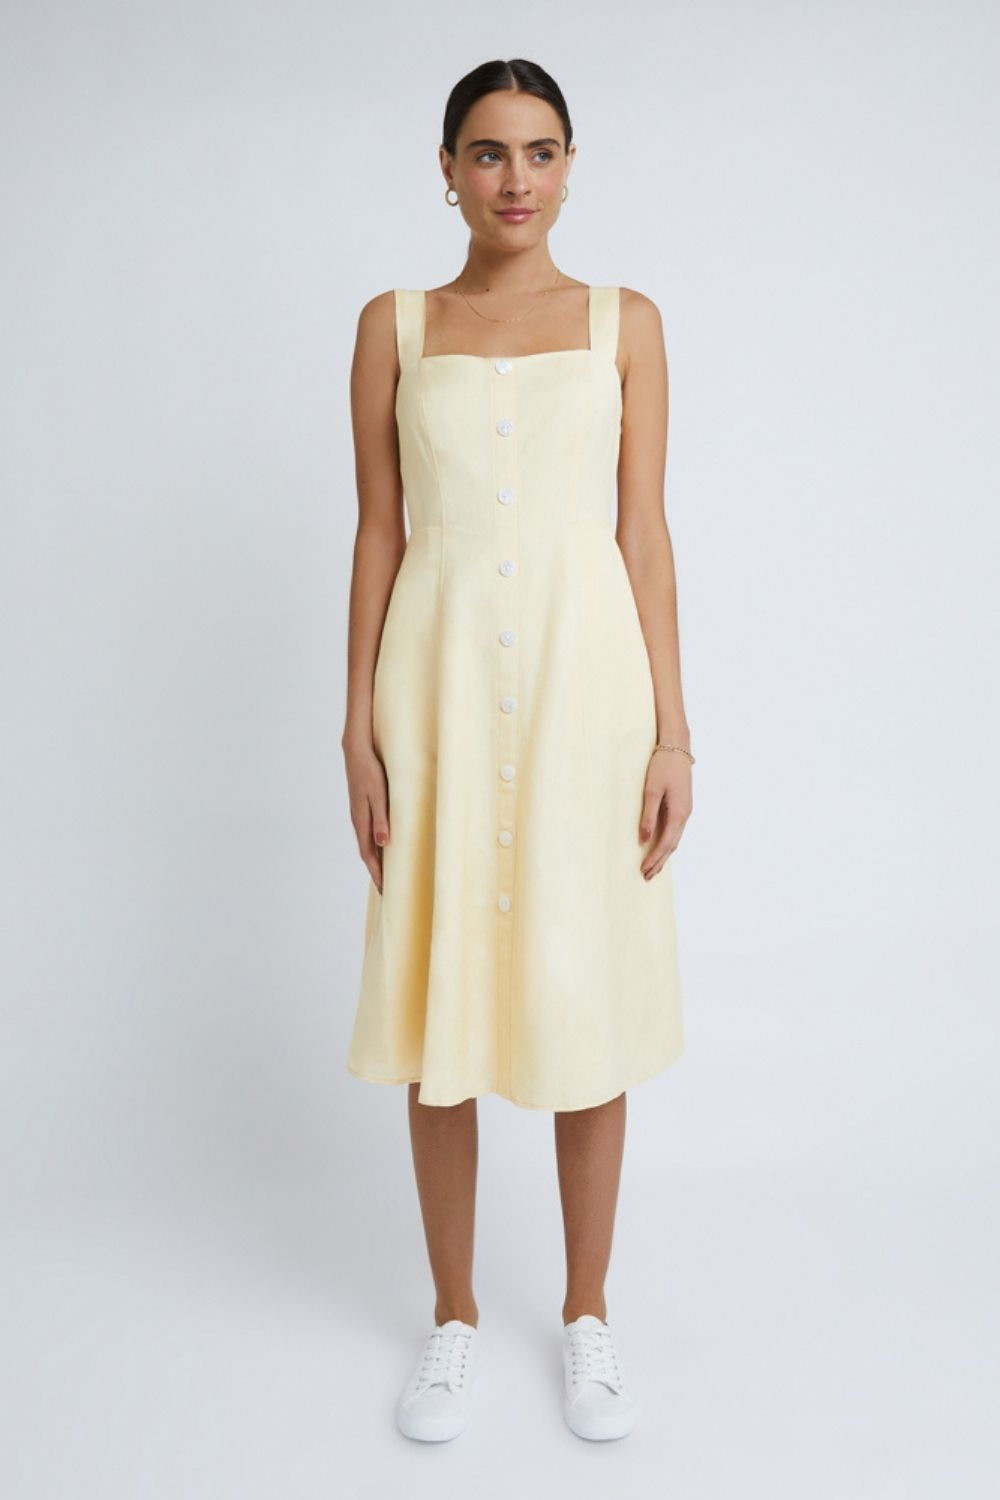 Staple The Label Clementine Sundress